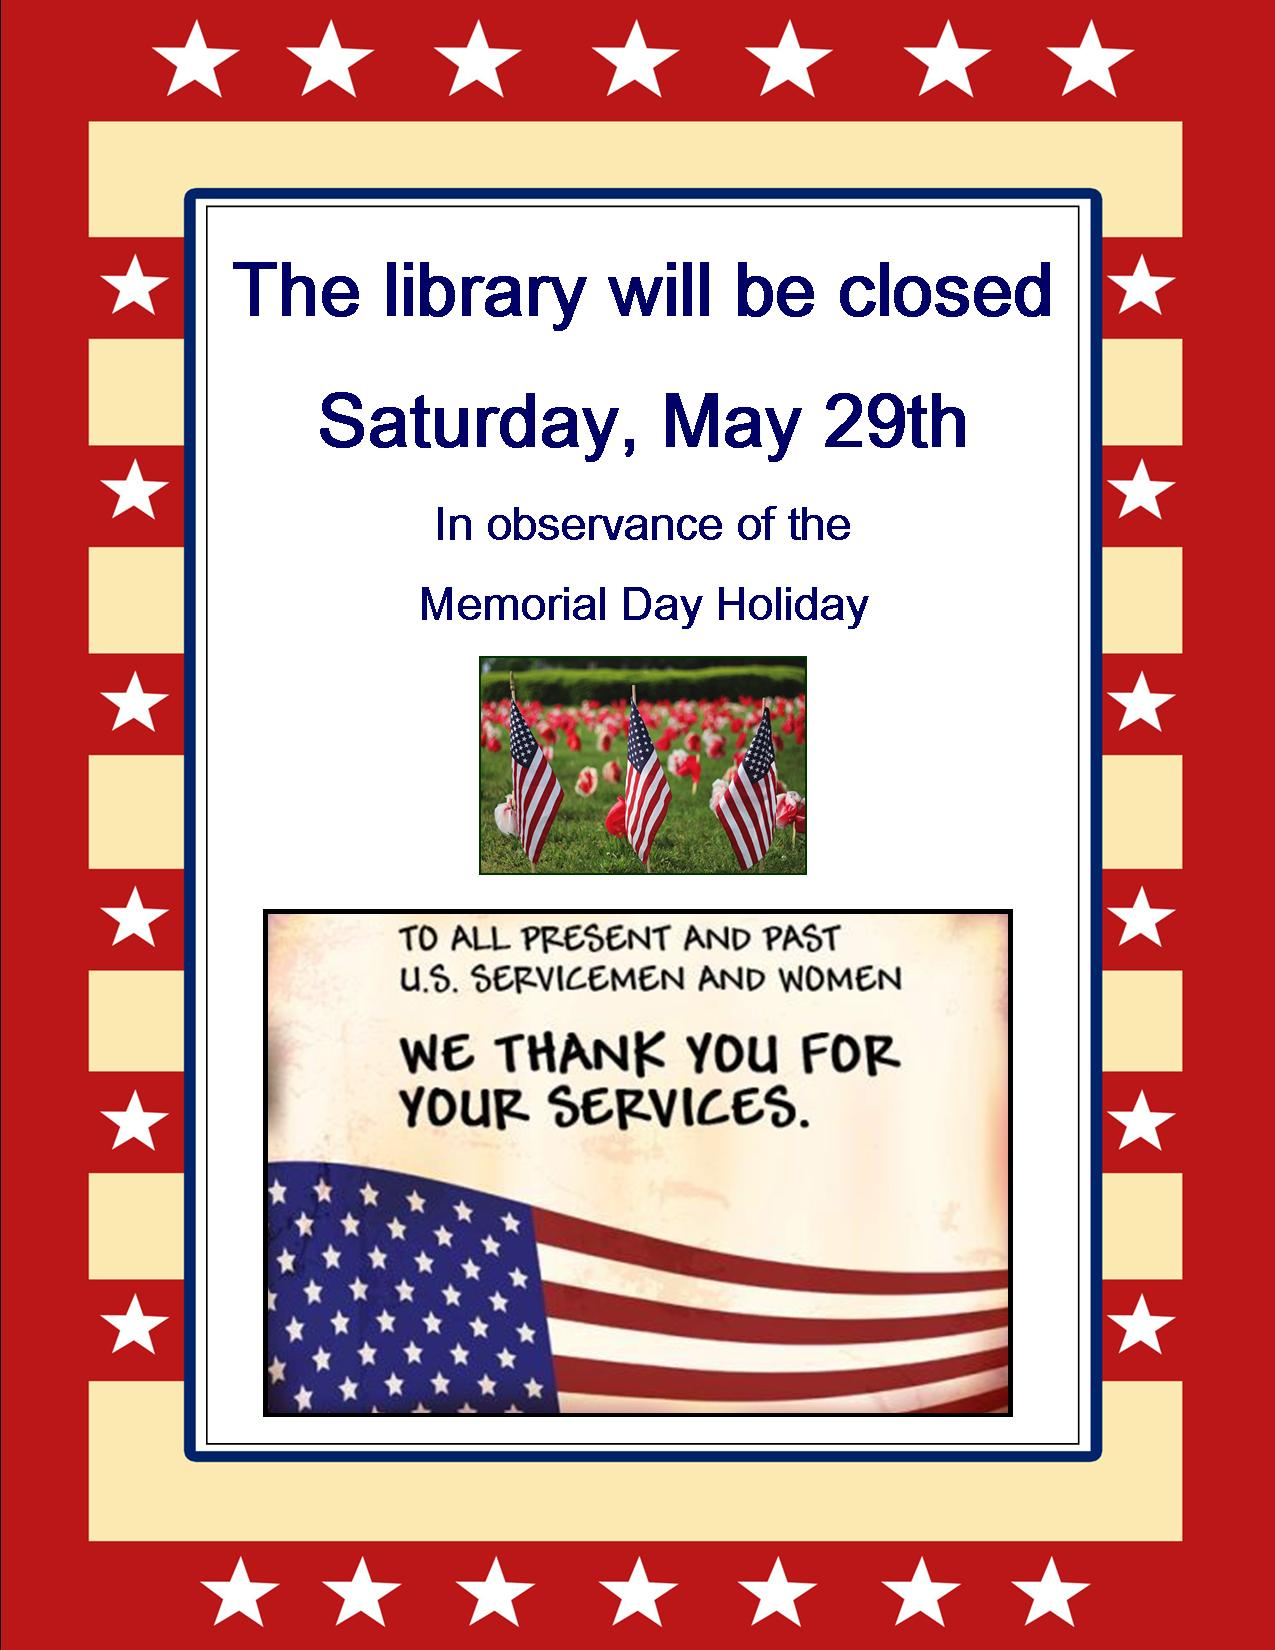 The library will be closed Saturday, May 29th in observance of the  Memorial Day Holiday.